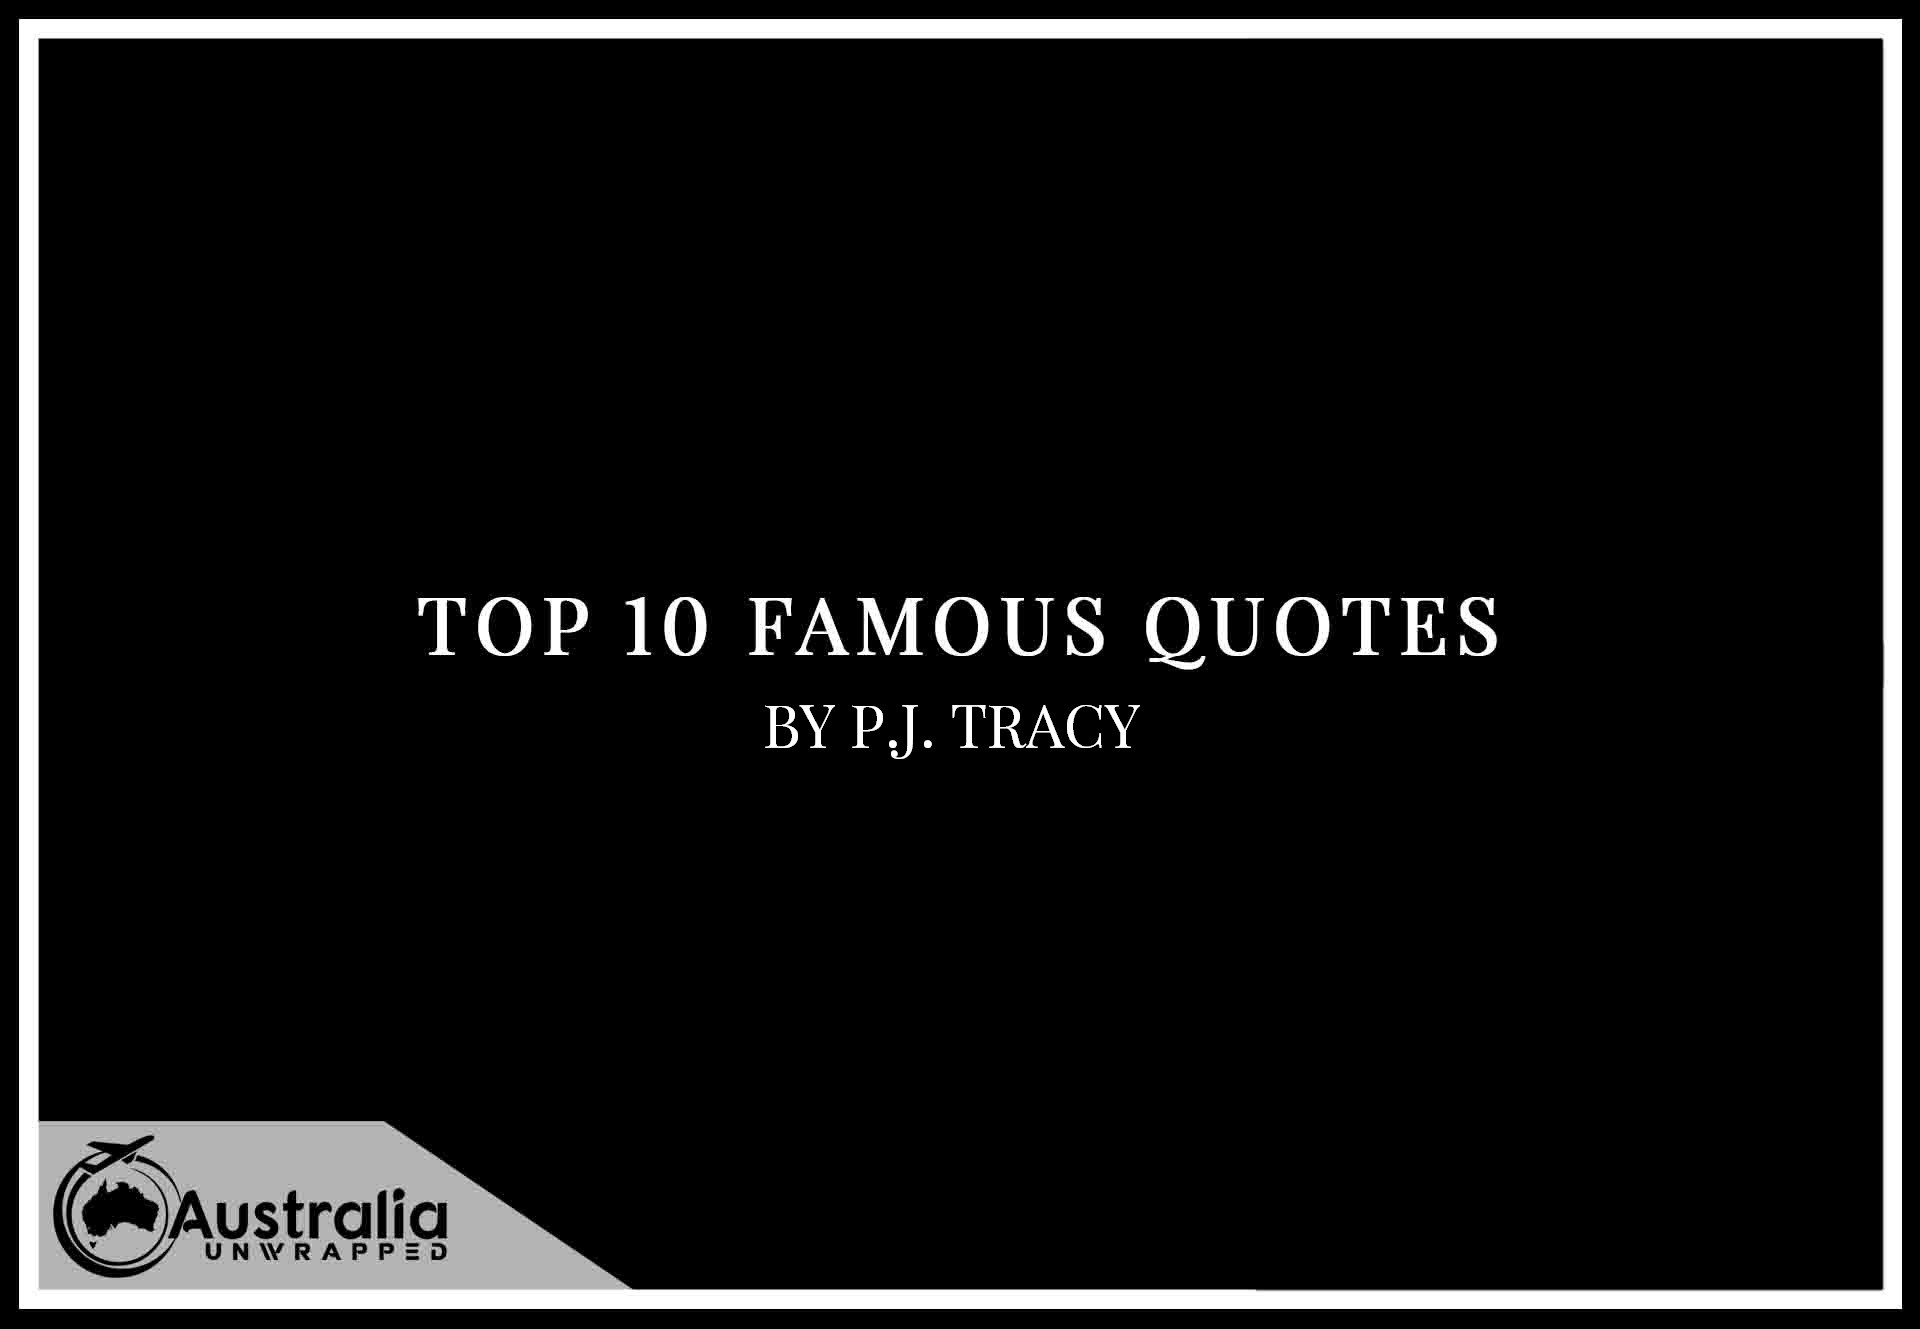 Top 10 Famous Quotes by Author P.J. Tracy